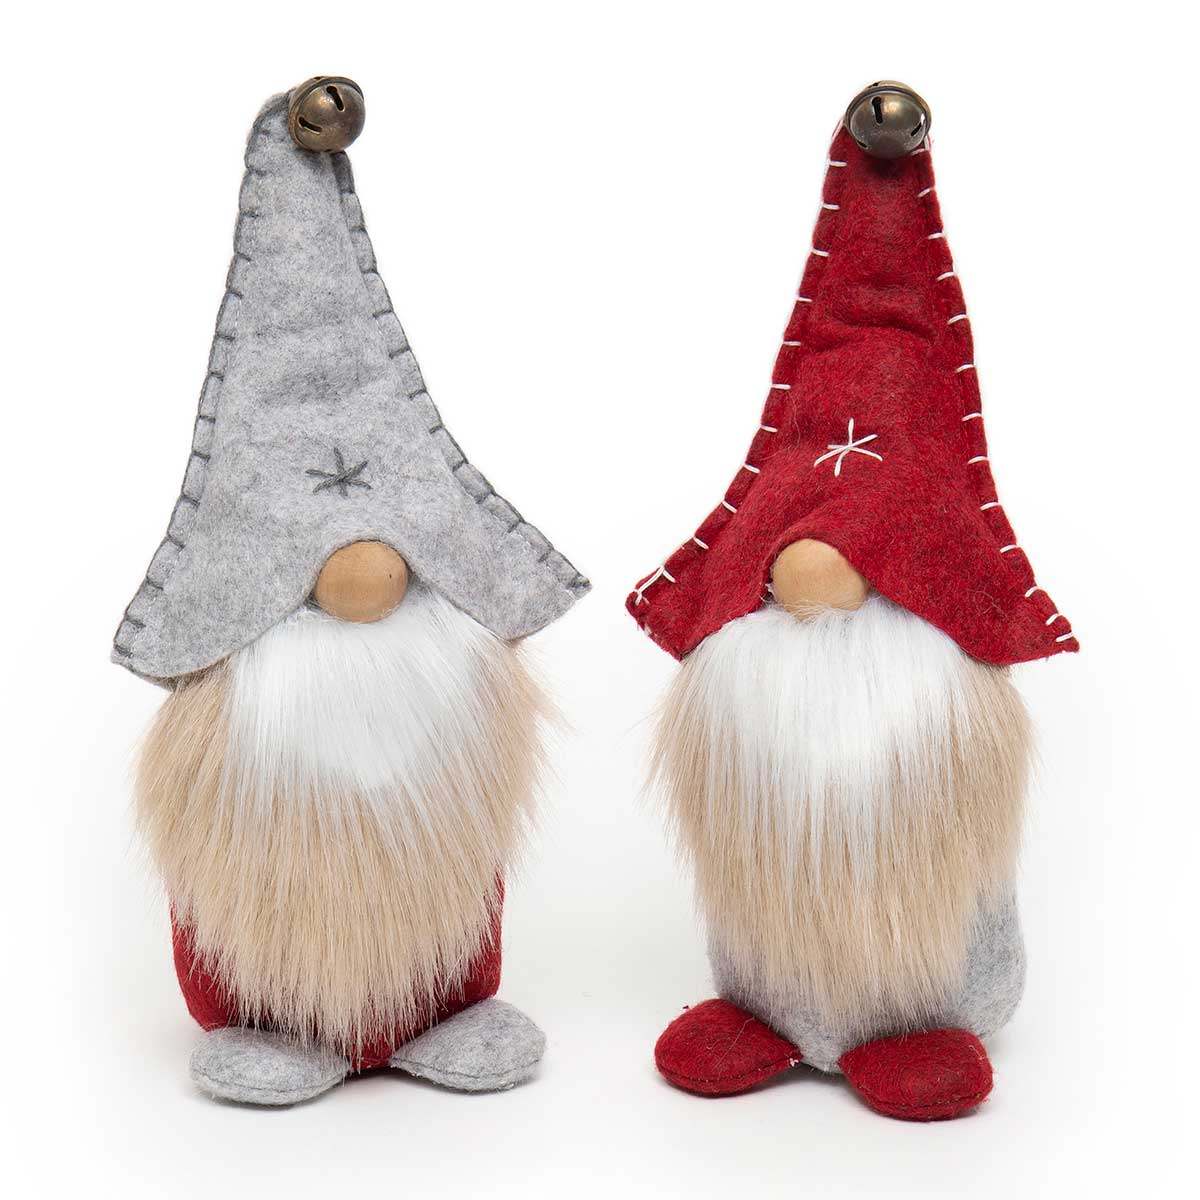 TOMMY TWO-TONE GNOME WITH BELL,